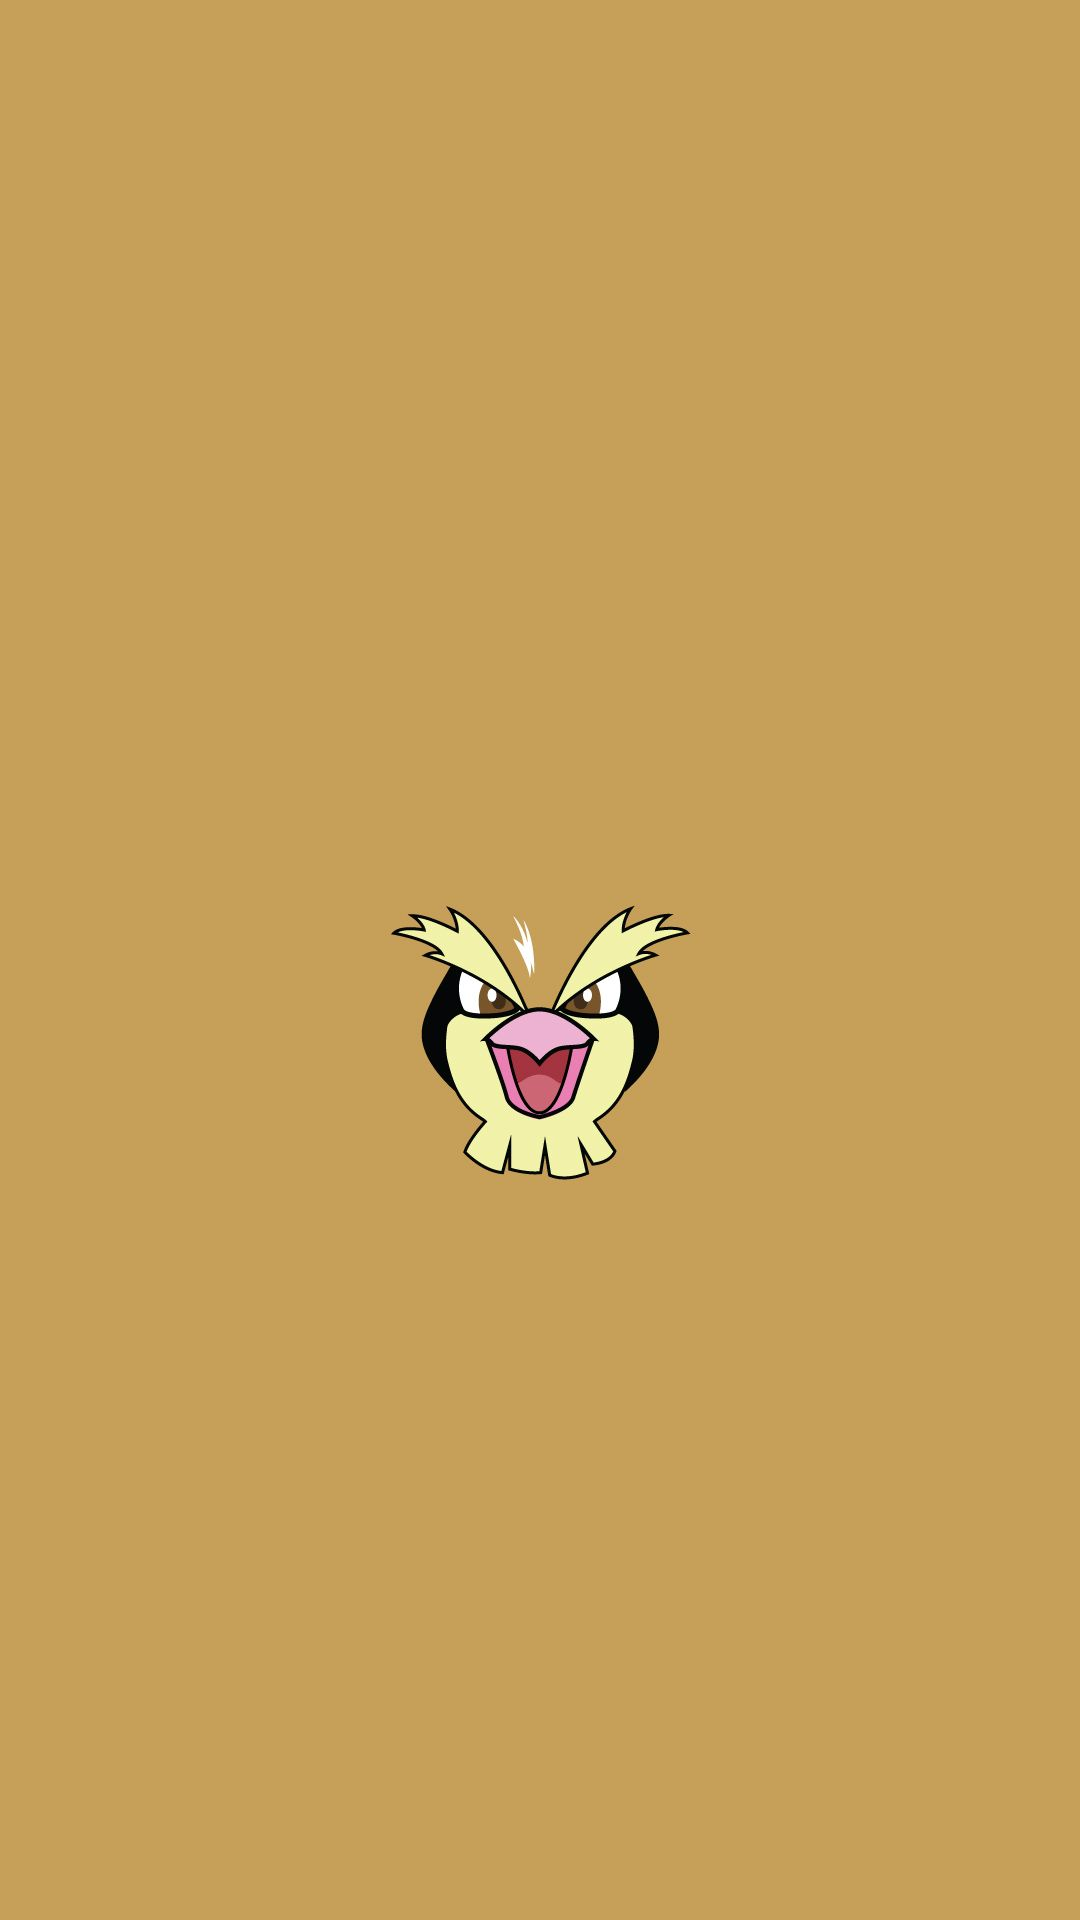 pidgey pokemon go character android wallpaper